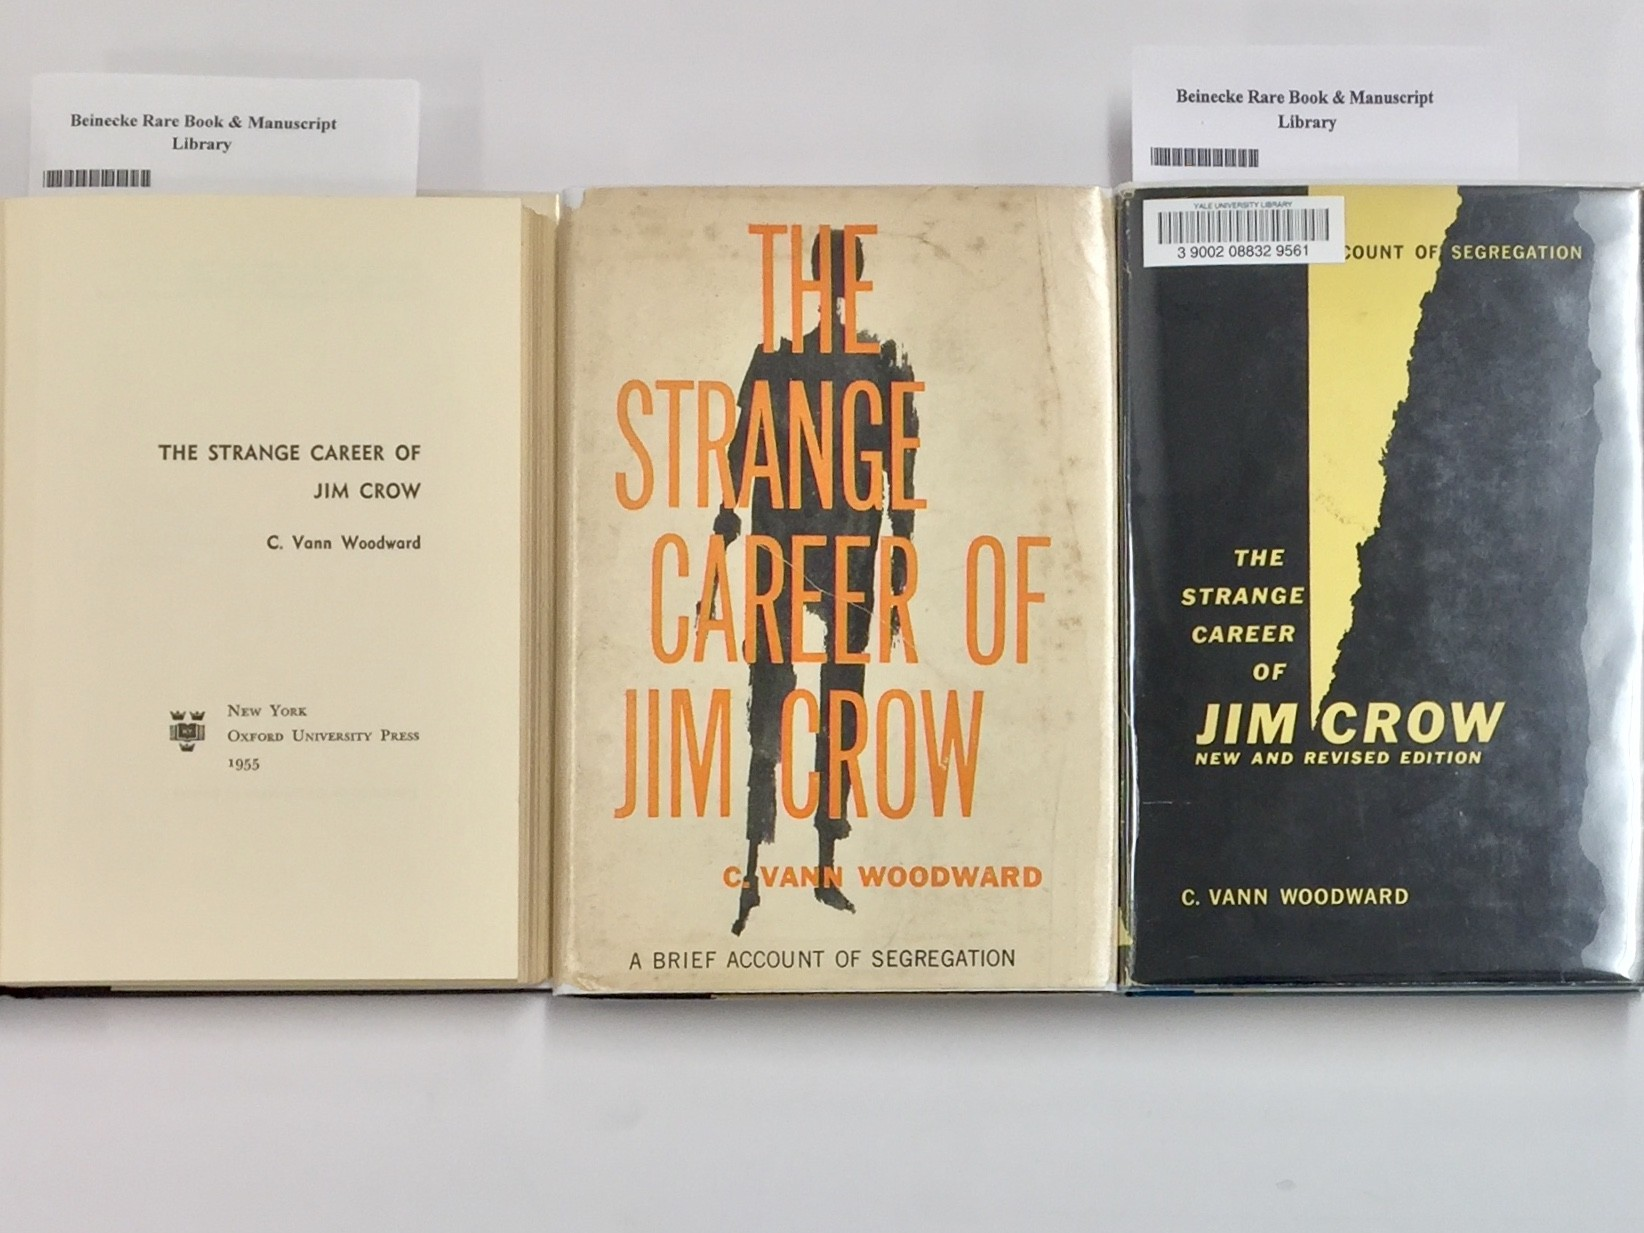 King Woodward And The Strange Career Of Jim Crow Beinecke Rare Book Manuscript Library